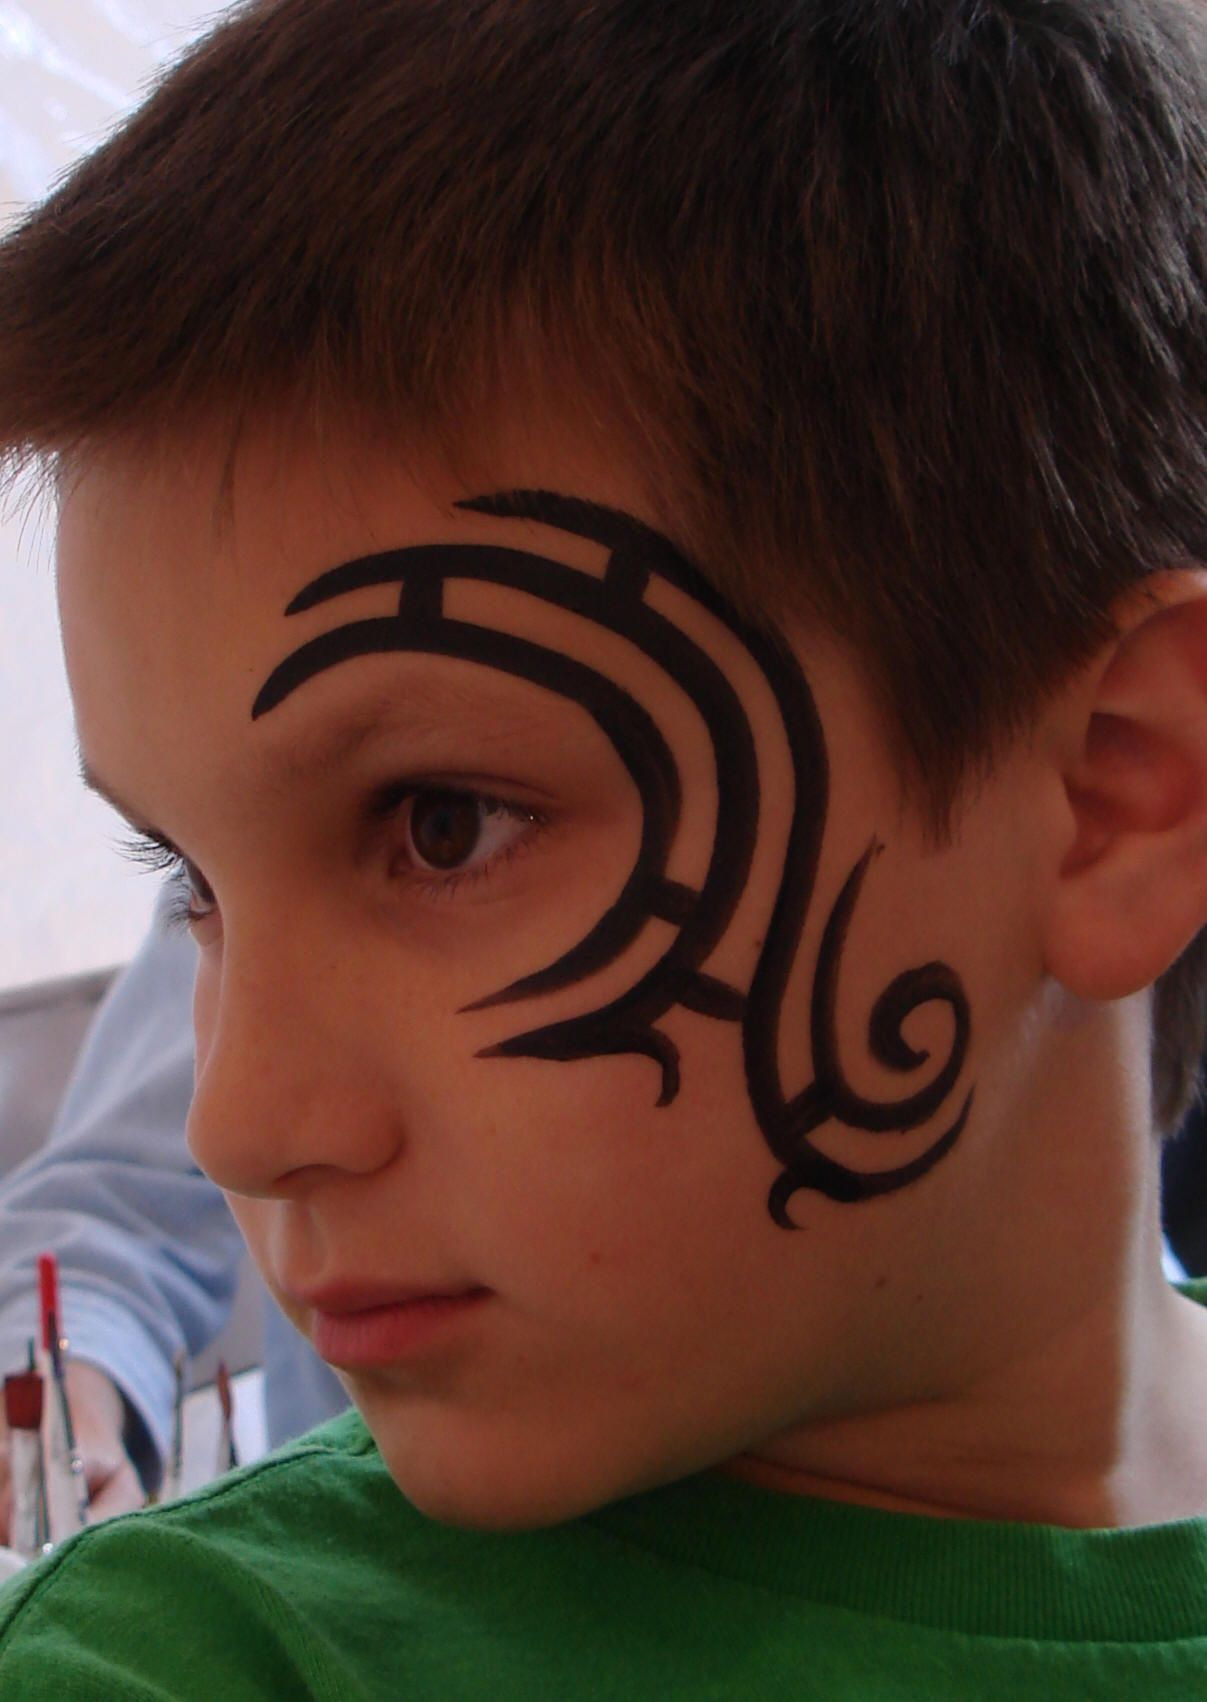 Pin By Julie Vandermude On Face And Body Art Eye Face Painting Face Painting Designs Tribal Face Paints